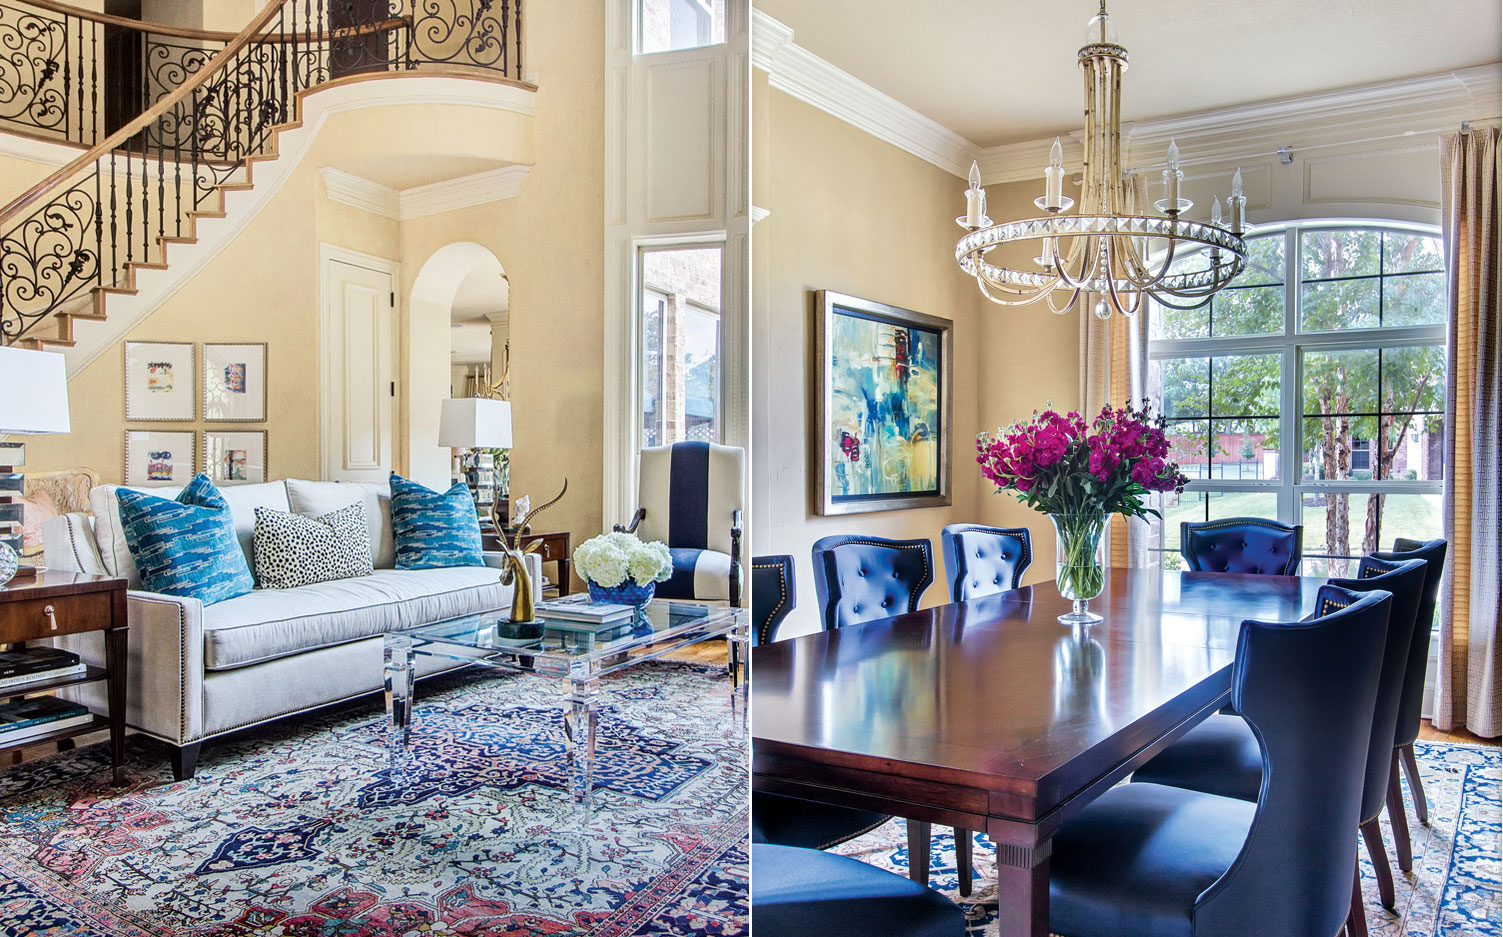 of a living room with blue decor and a dining room with blue chairs